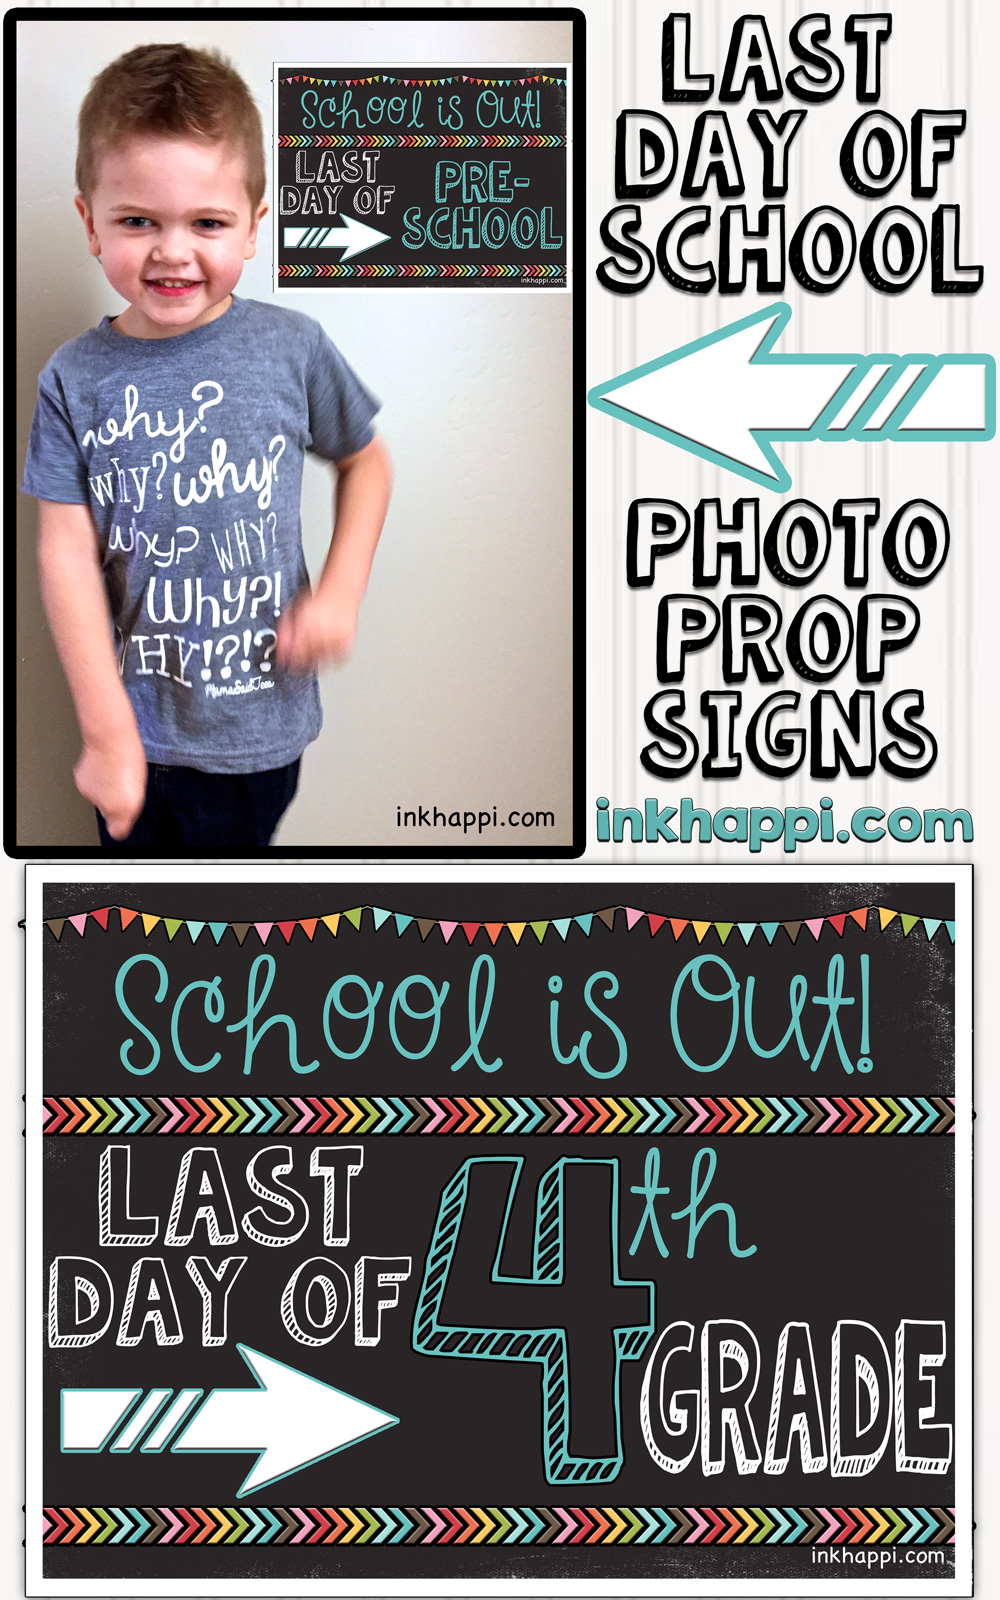 Nifty image intended for last day of school printable